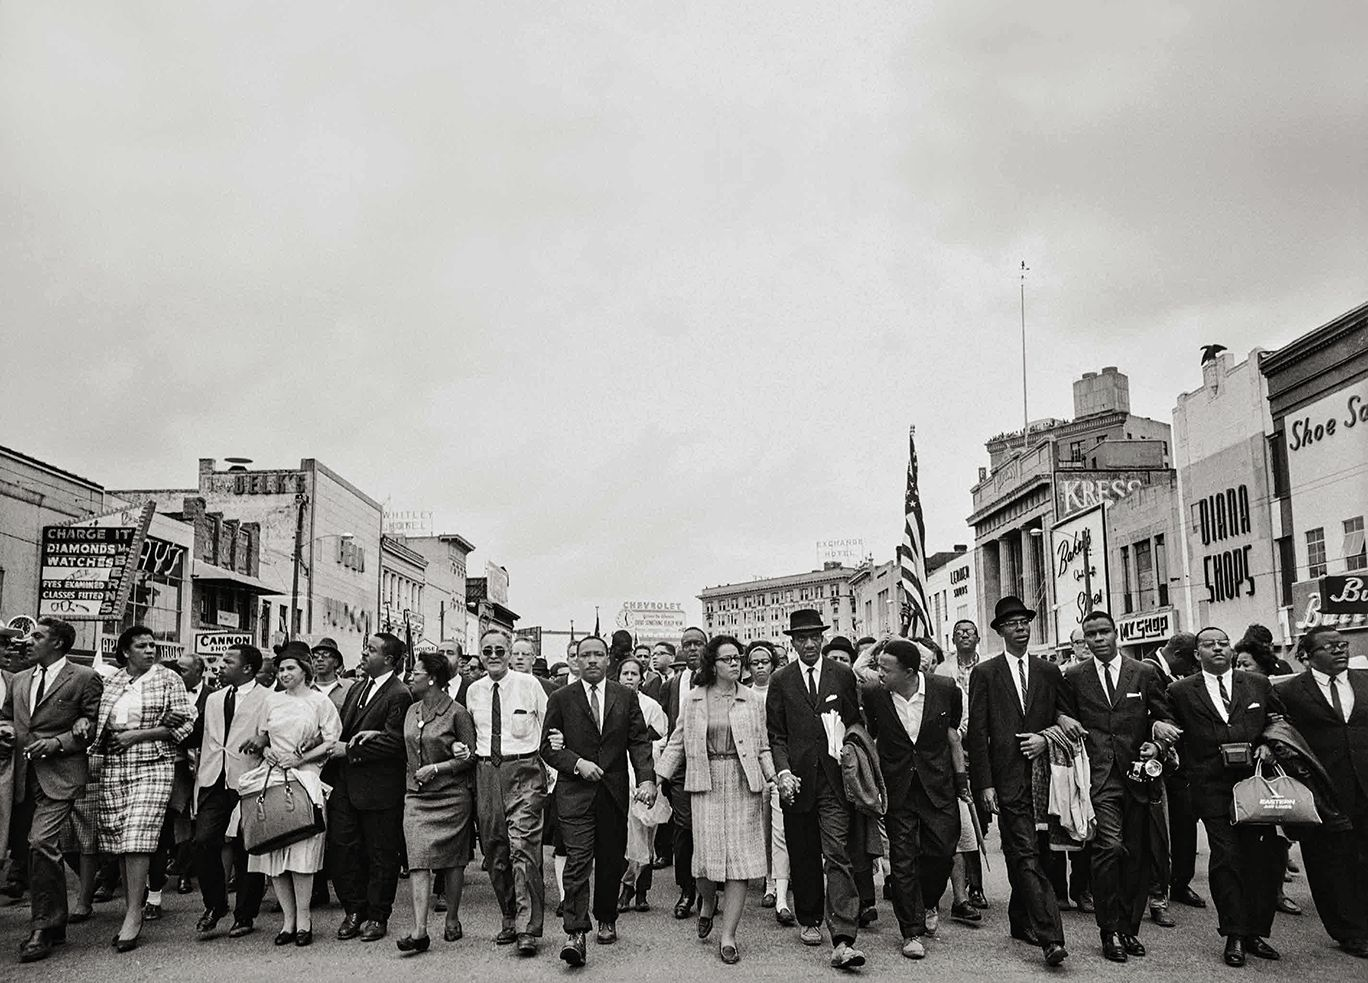 Dr. Martin Luther King Jr., His Wife, Coretta, Rosa Parks, and Other Activists March for Voting Rights, 1965, 16 x 20 Inches, Silver Gelatin Photograph, Edition of 25